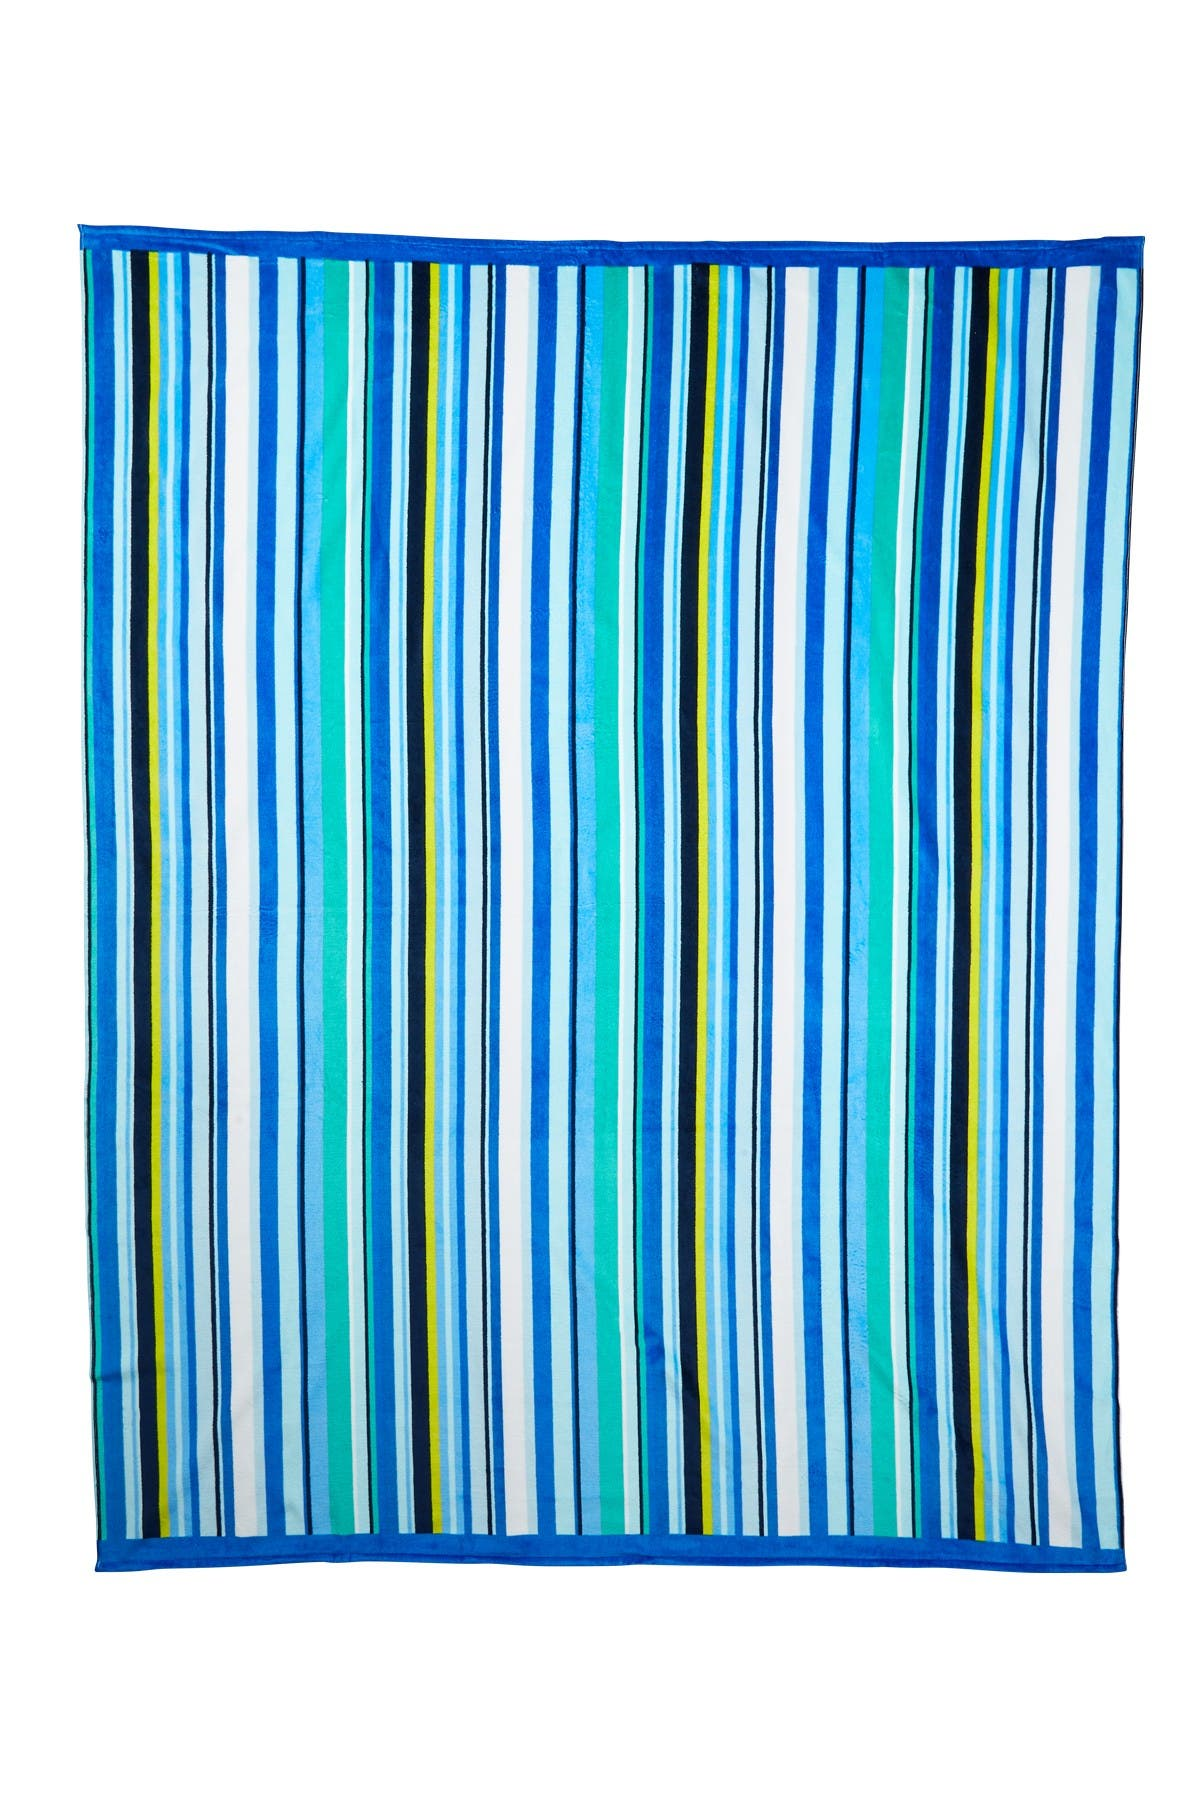 Image of Apollo Towels Sun Beach Towel - Multi